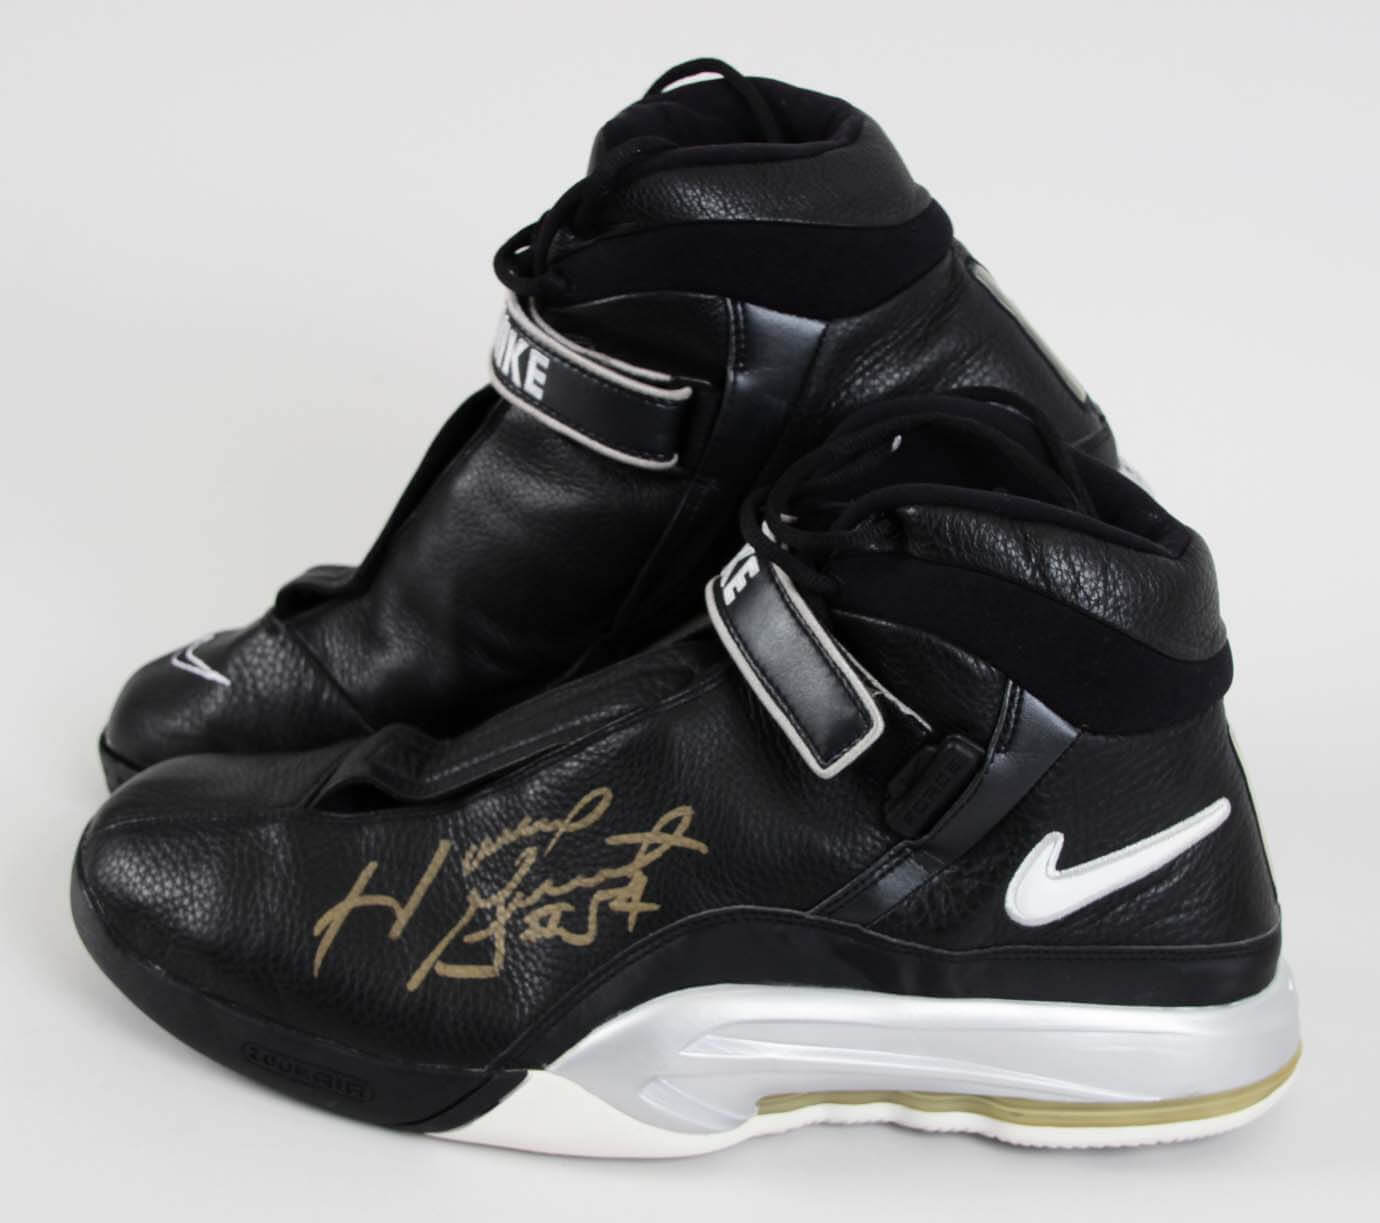 04005f038d8 Autographed Item  Game-Worn Shoes